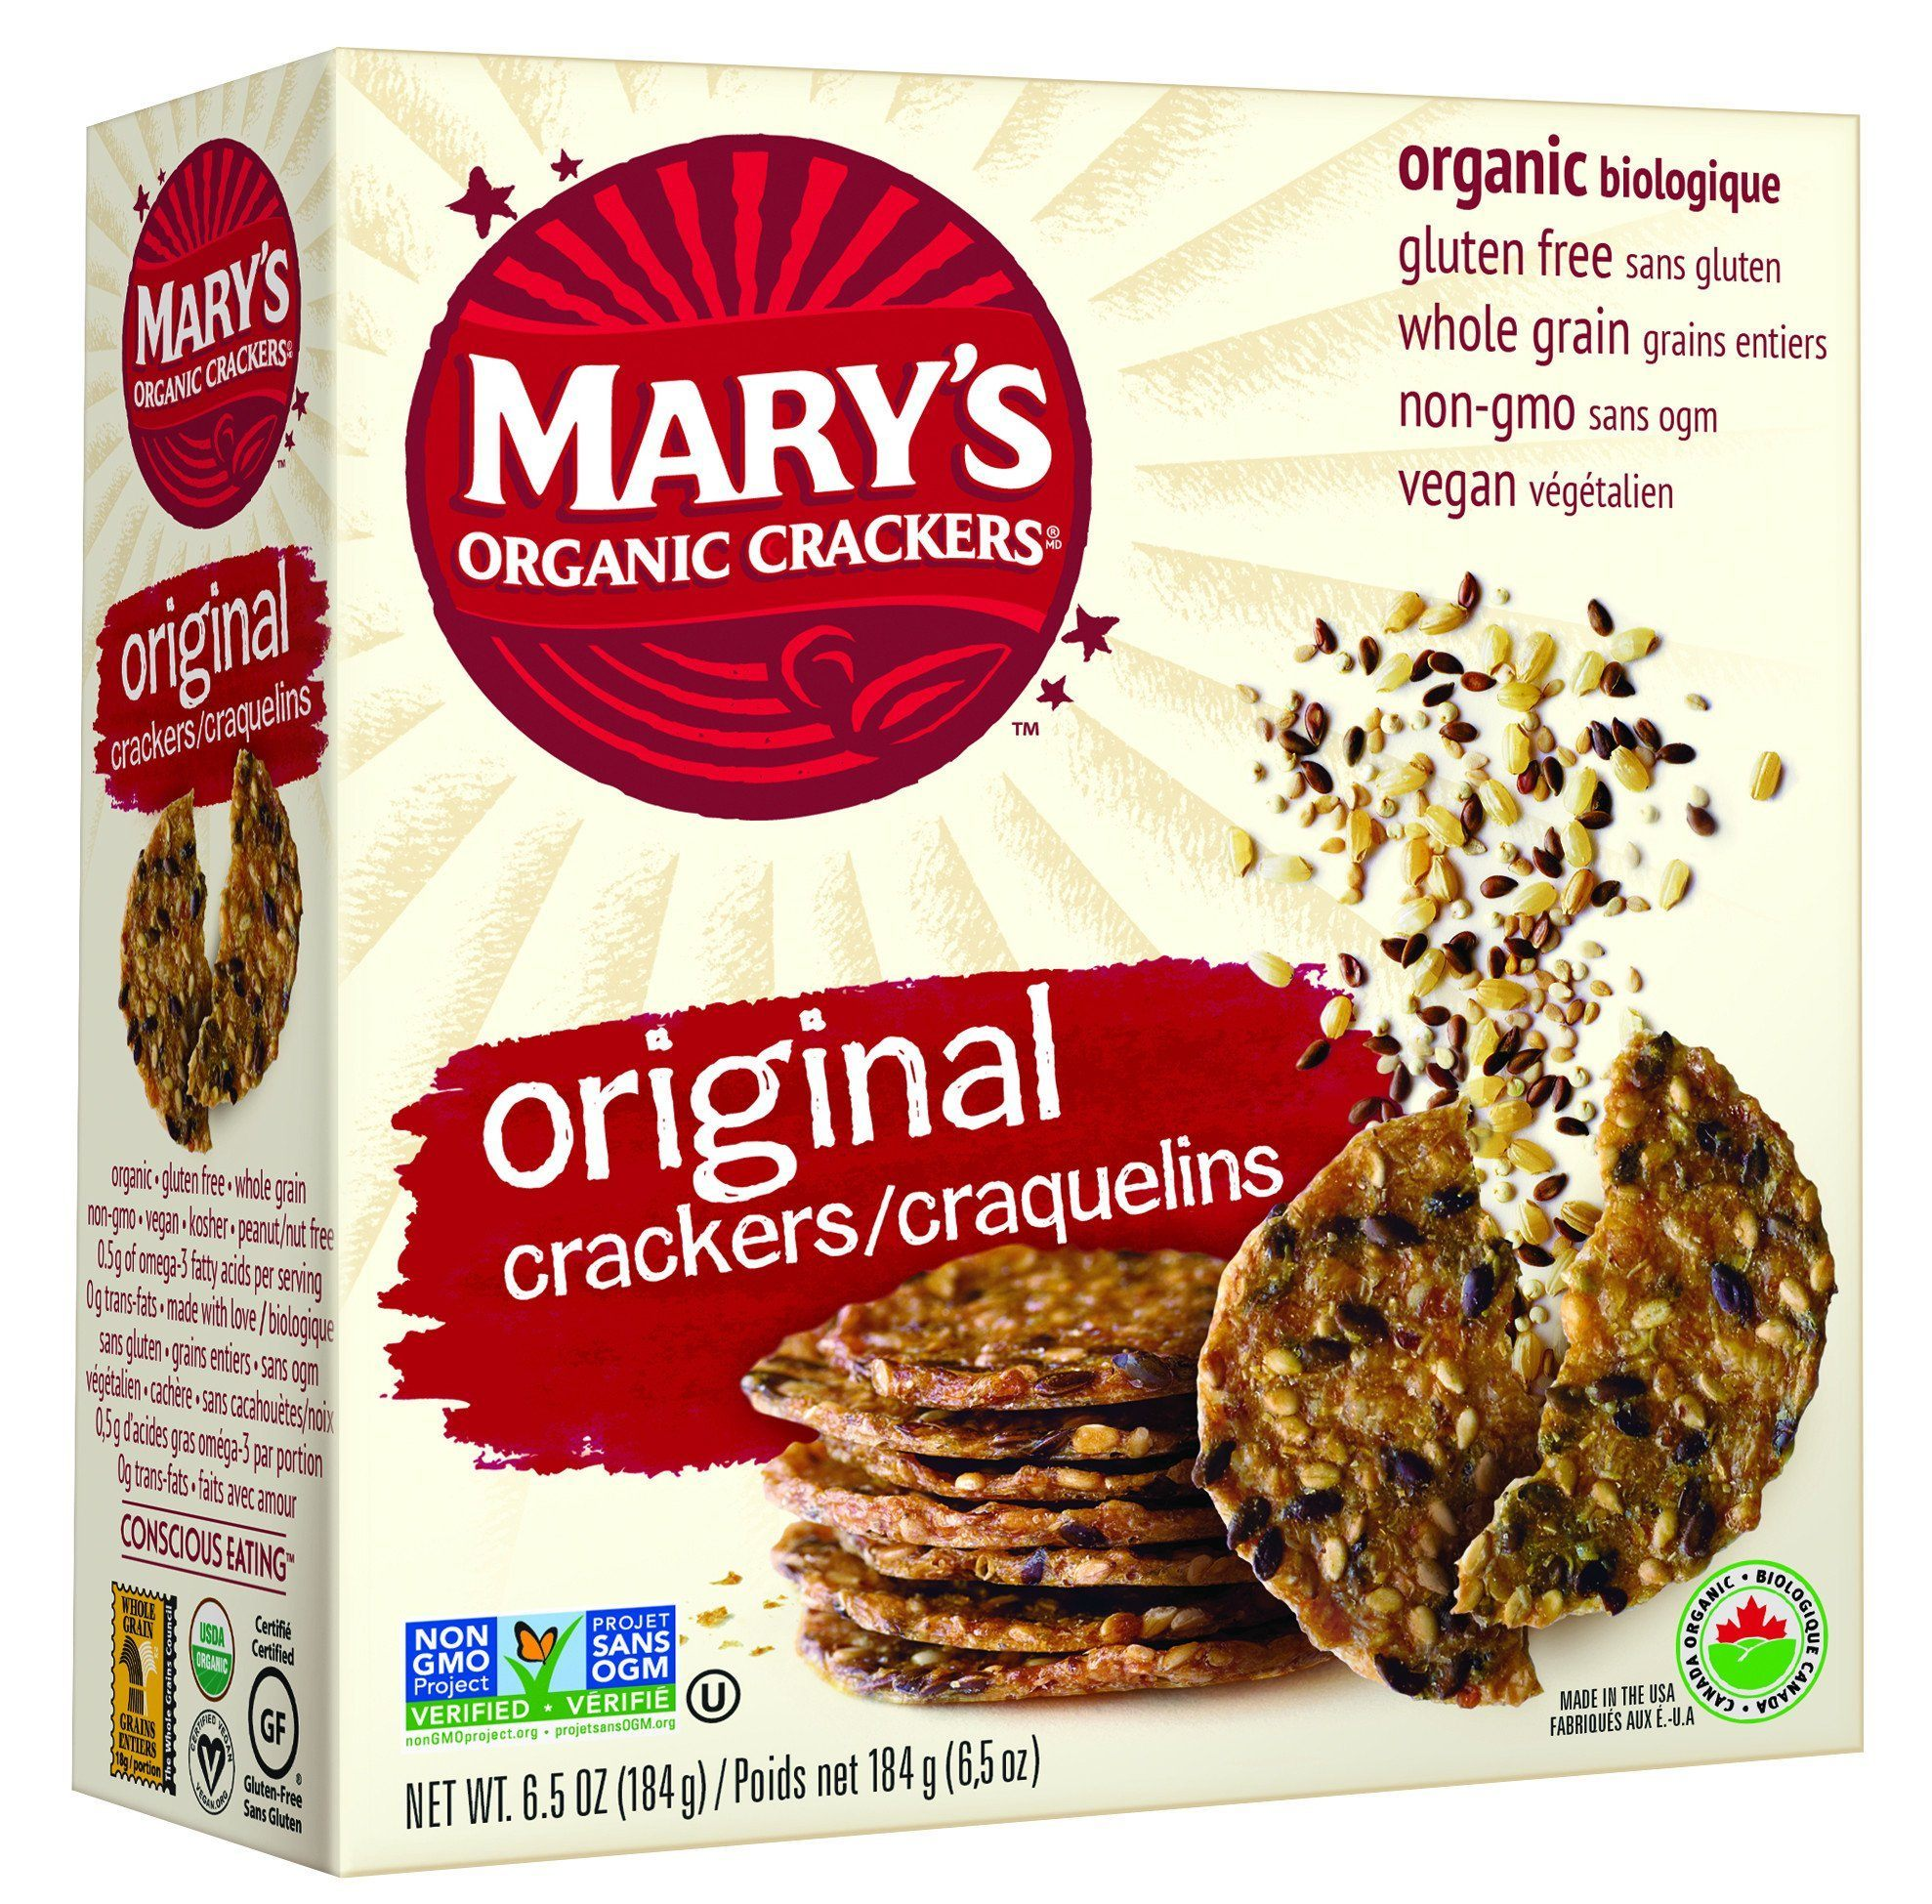 Food & Drink - Mary's Organic - Original Crackers, 184g